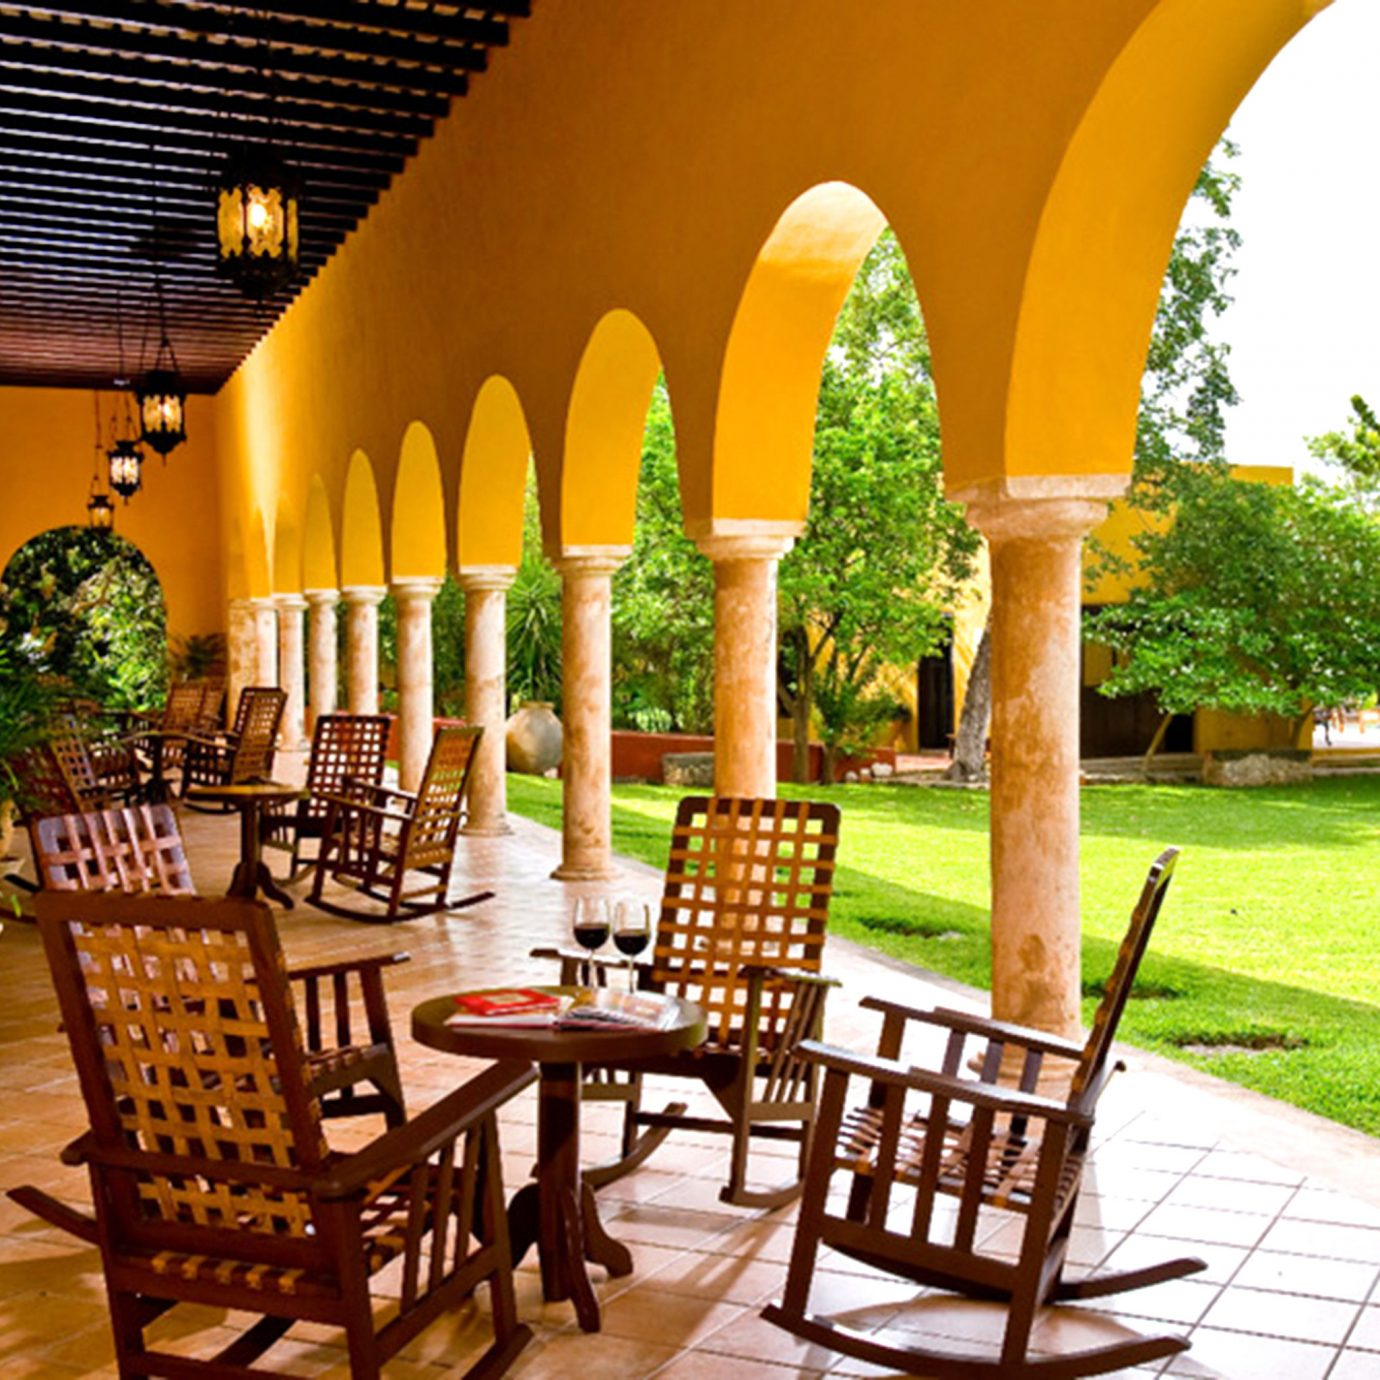 Bar Dining Drink Eat Luxury Rustic hacienda Resort restaurant Villa palace Courtyard outdoor structure